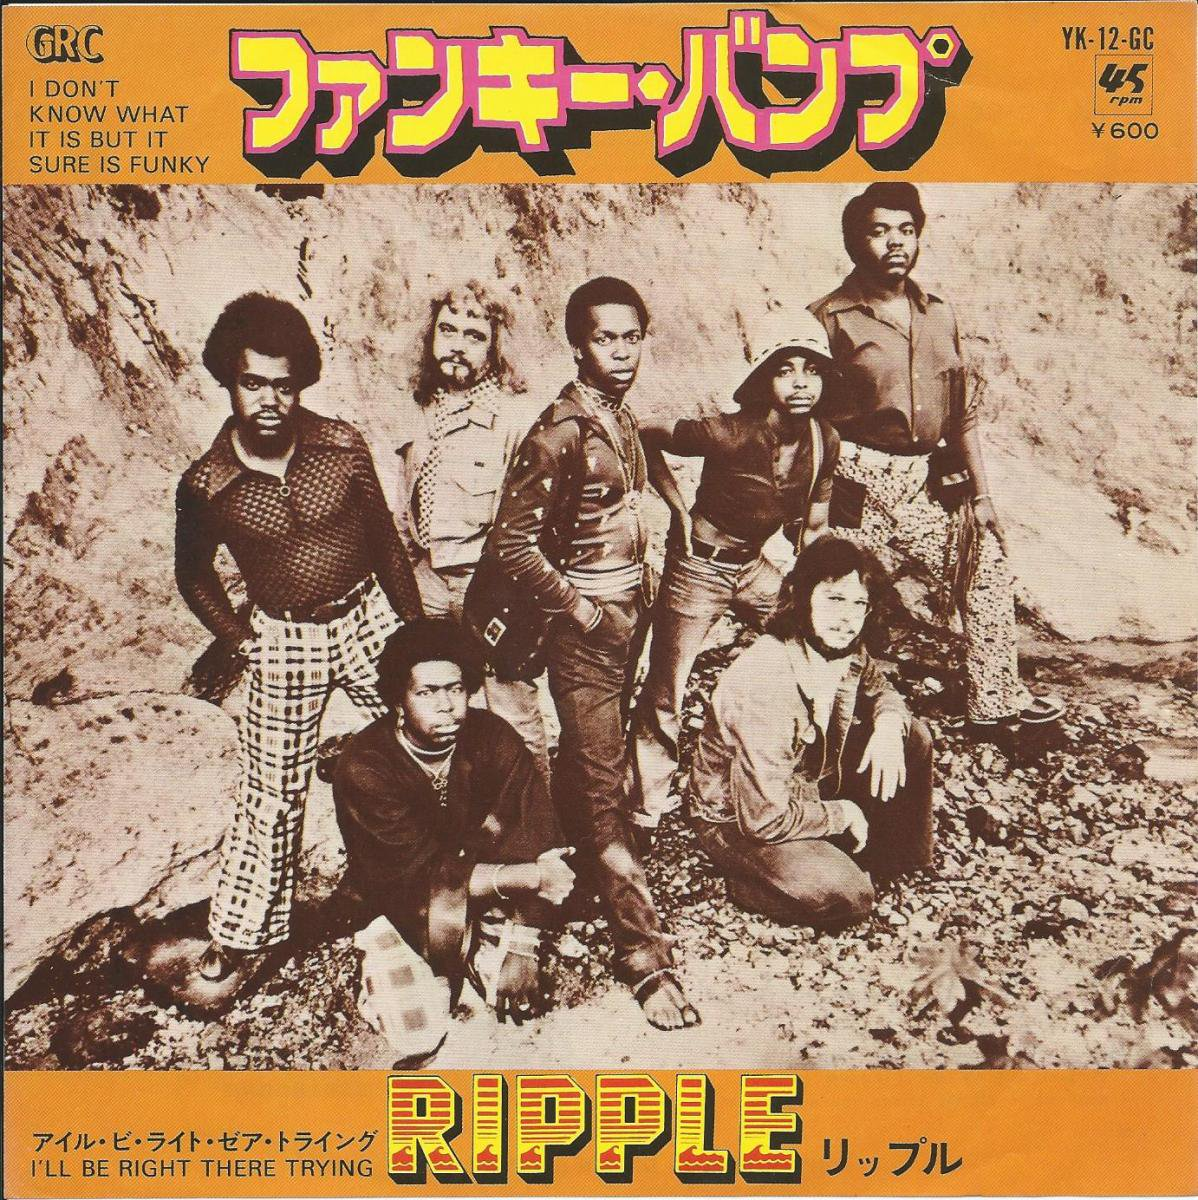 リップル RIPPLE / ファンキー・バンプ I DON'T KNOW WHAT IT IS BUT IT SURE IS FUNKY (7